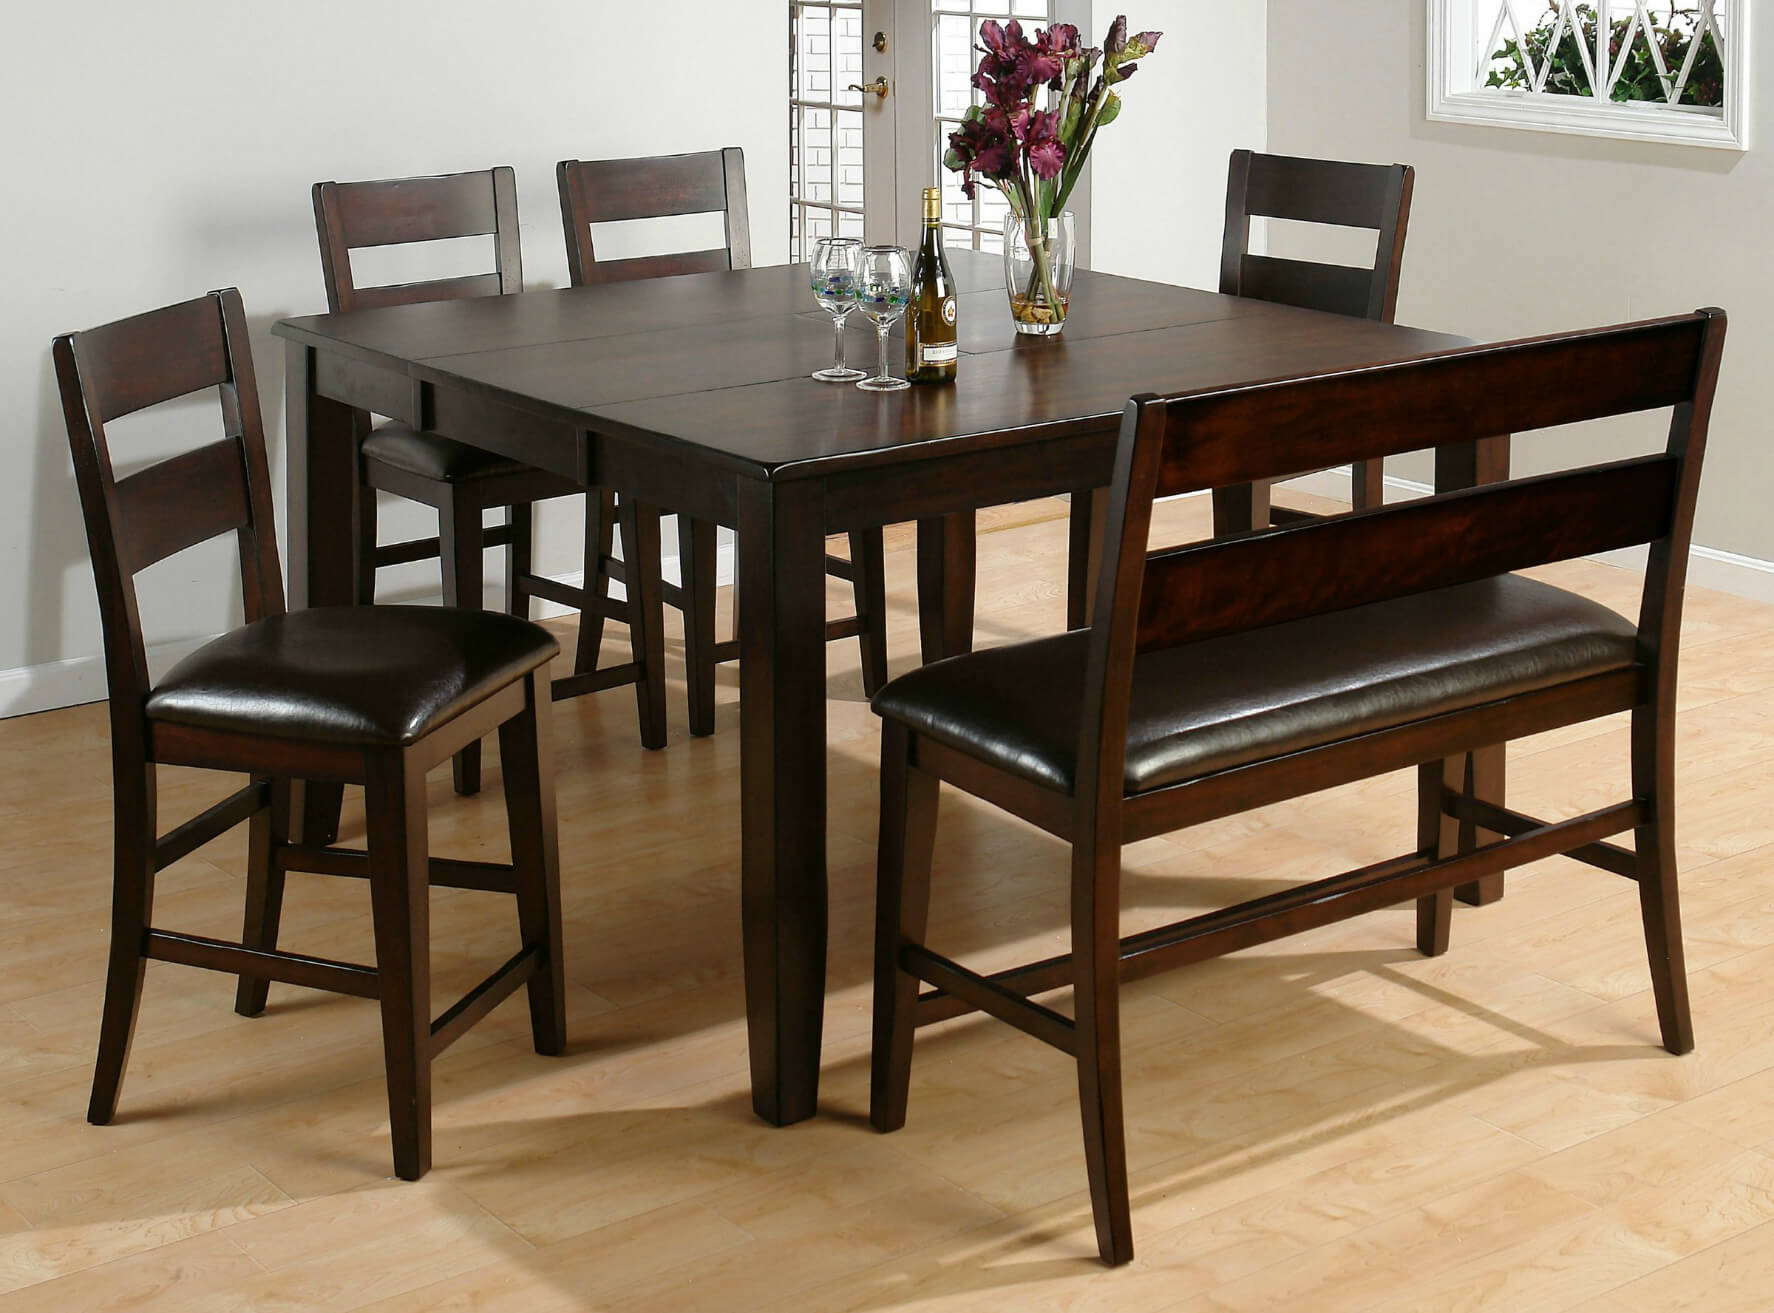 26 Big Small Dining Room Sets With Bench Seating Here S A Counter Height  Square Dining Room